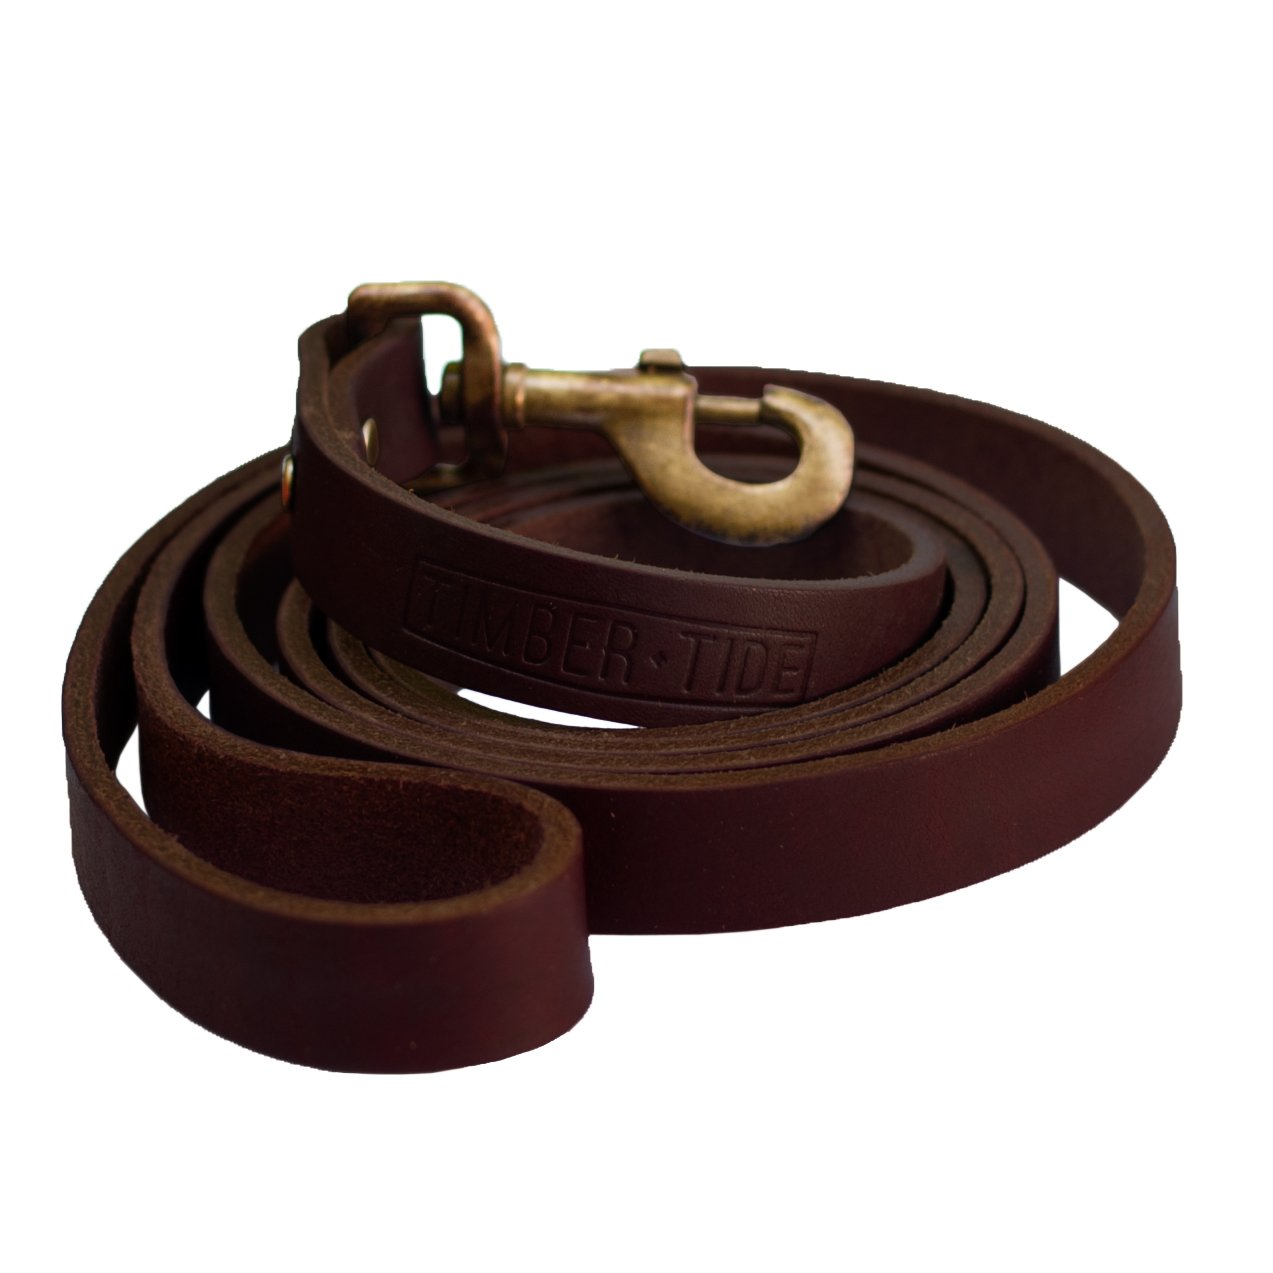 Timber and Tide Outdoor Co - Premium Heavy Duty Leather Dog Leash - 6 Foot Long x Almost 1 Inch Wide - Soft and Extra Strong Full Grain Leather - Great for Large and Medium Dogs by Timber & Tide Outdoor Co.